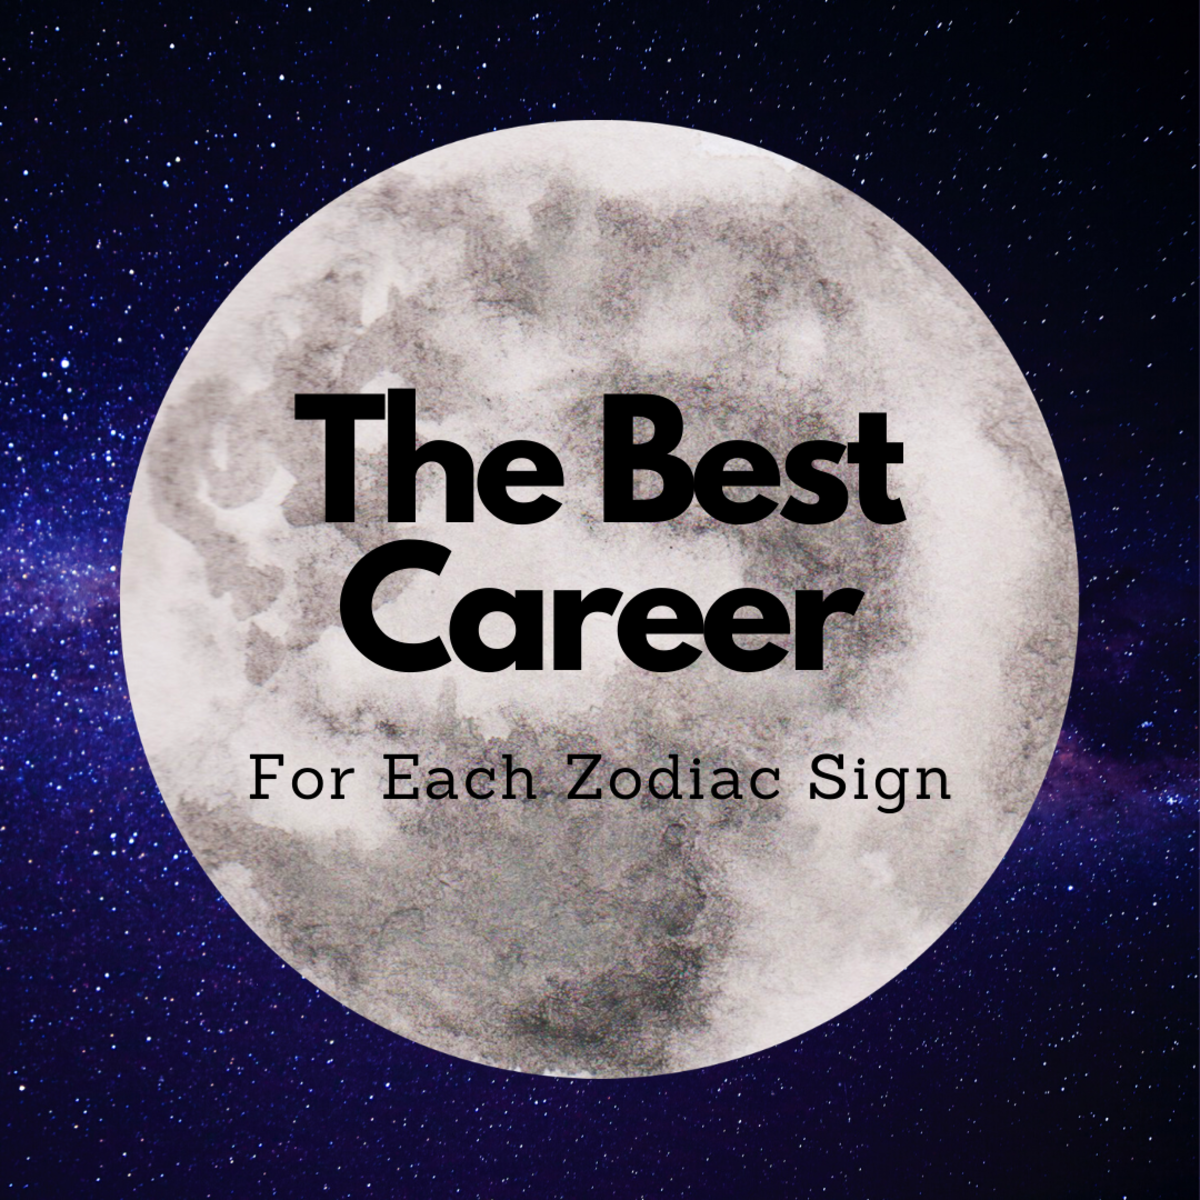 Astrology Signs: Best Careers for Each Zodiac Sign